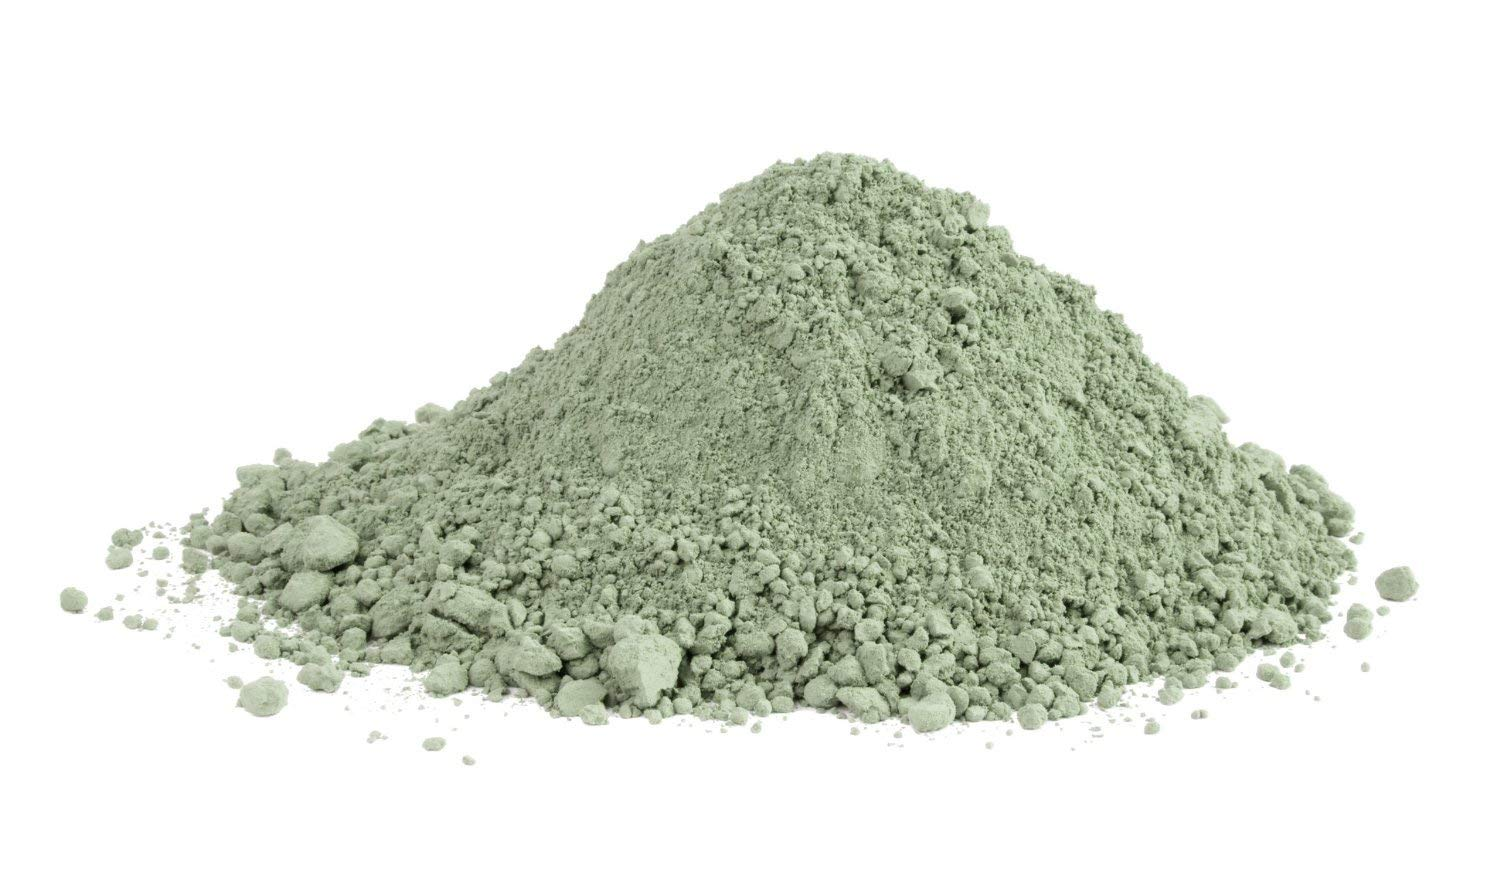 French Green Clay - French green clay has high absorbent properties. It removes impurities, tightens the pores, tones & exfoliates the skin.Good for acne, scars and rashes.